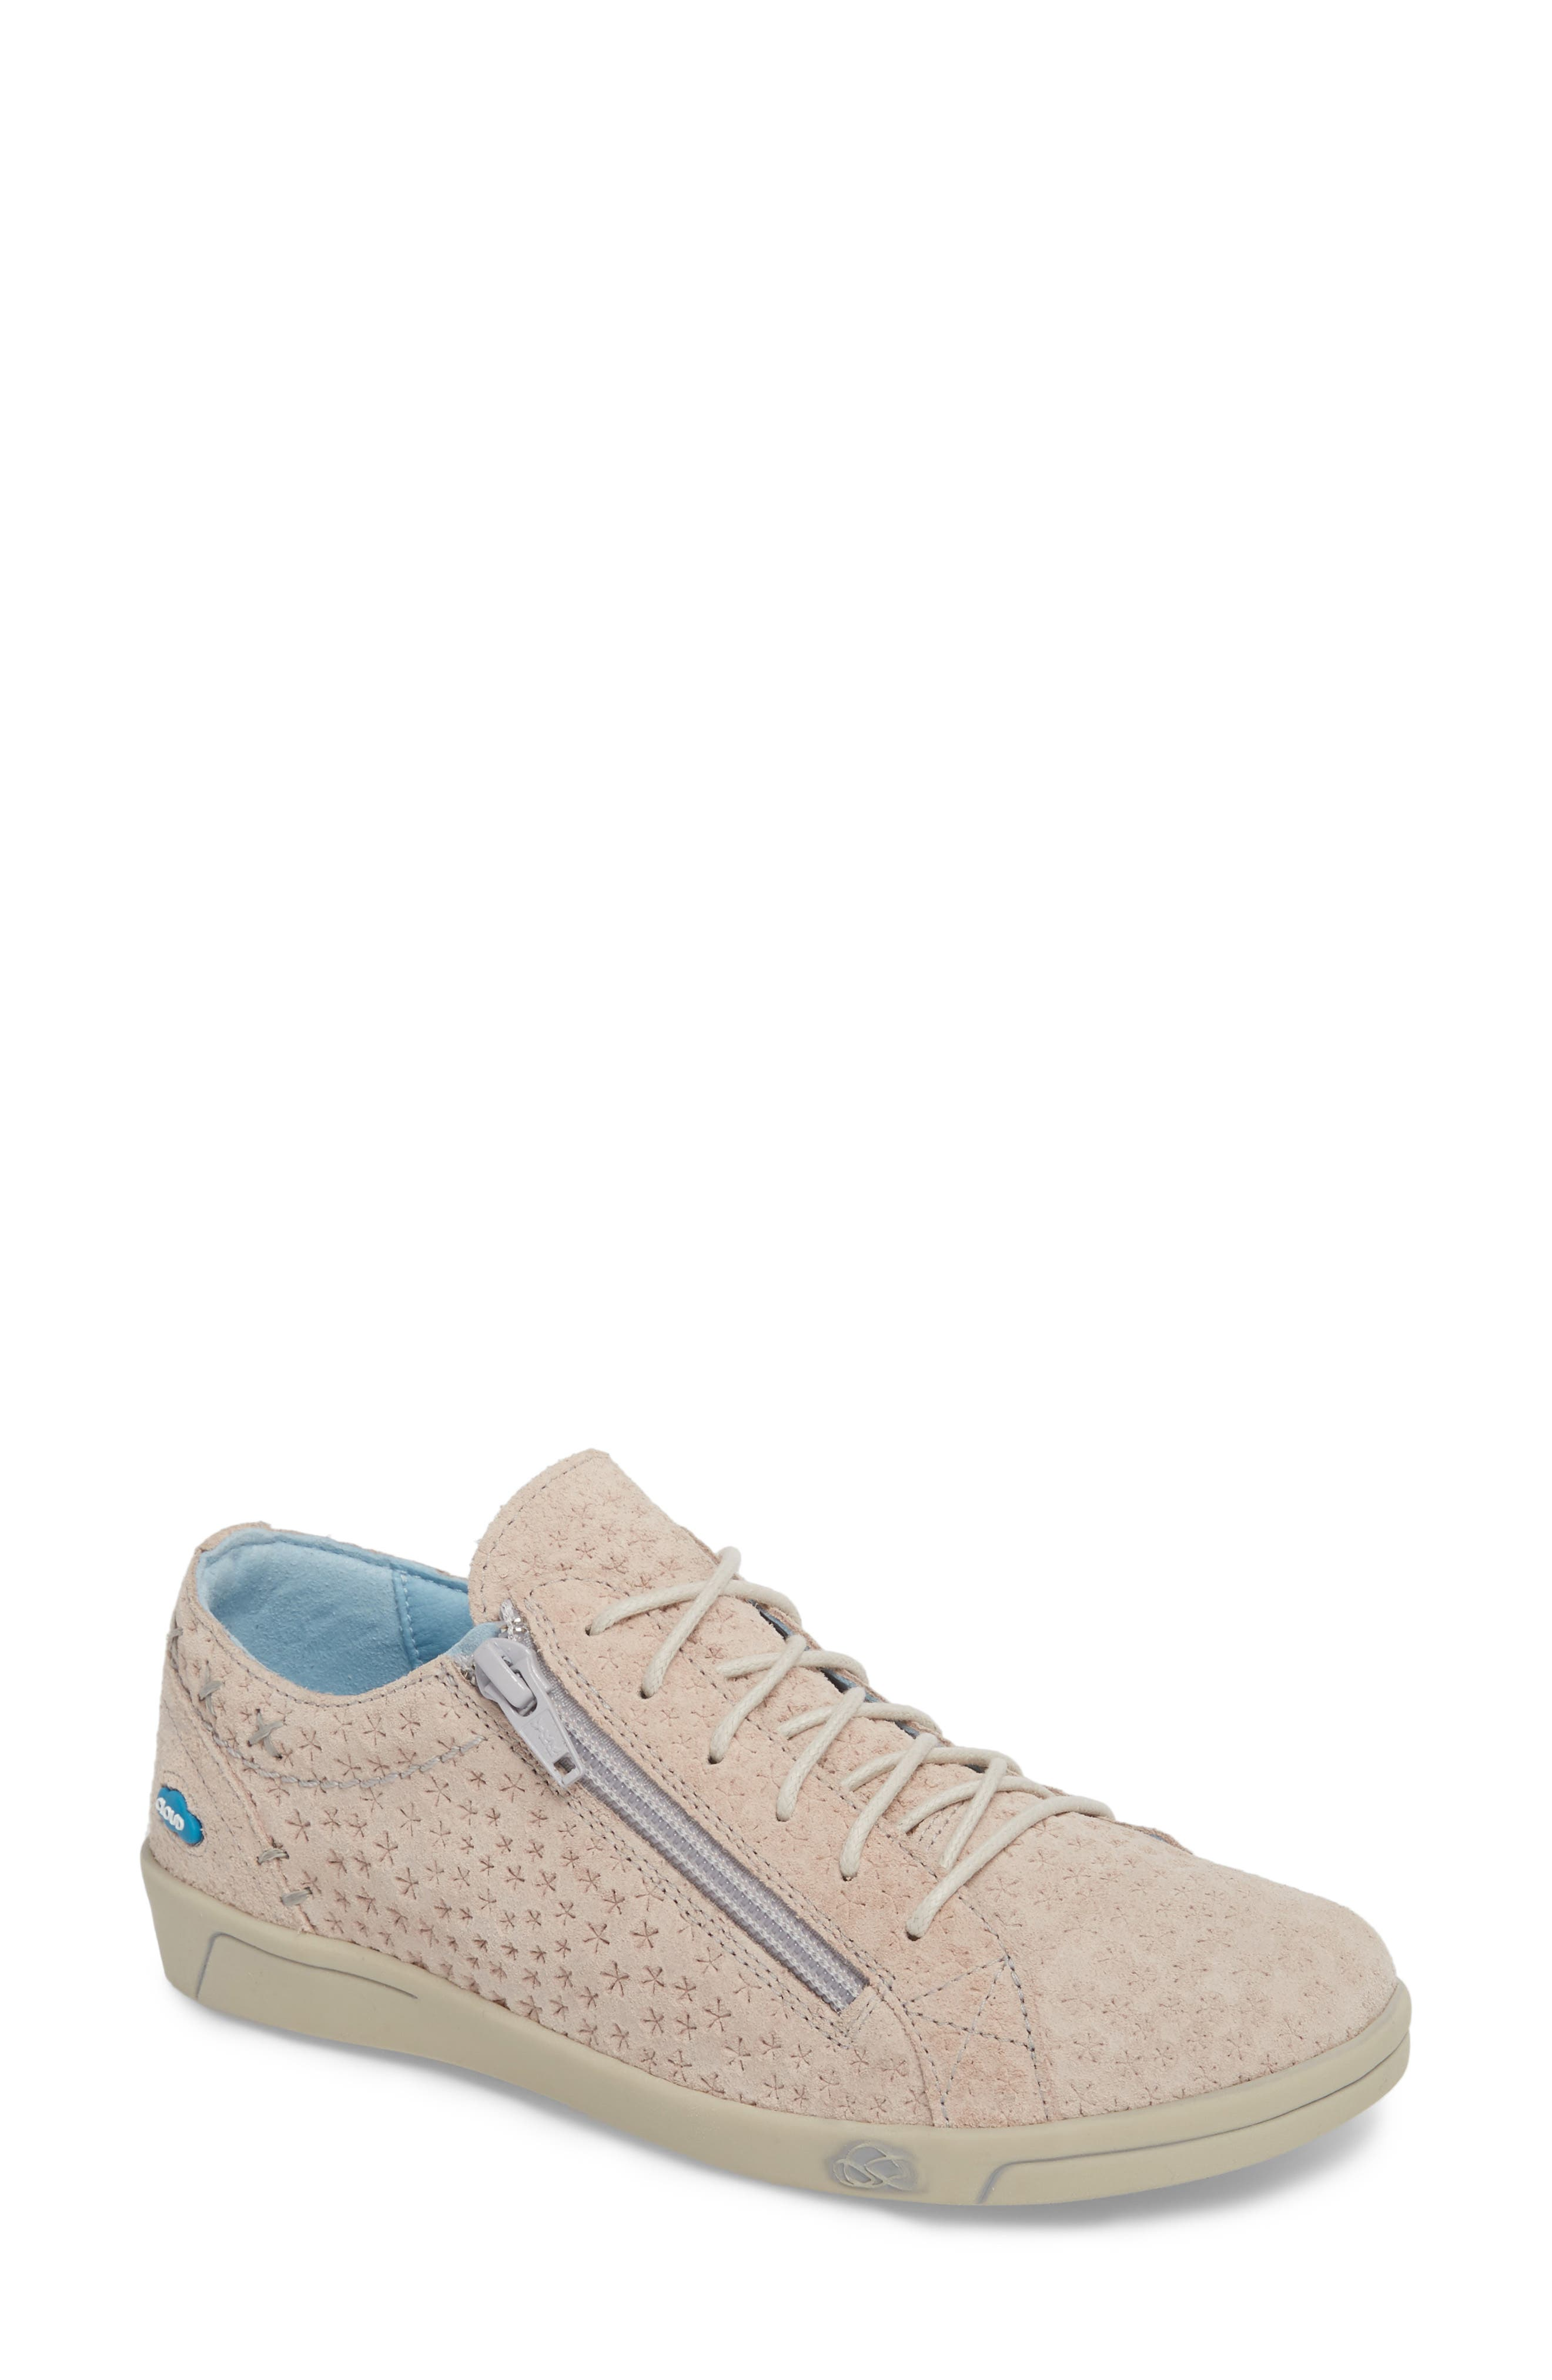 Subtle star perforations in the soft leather distinguish a casual, low-profile sneaker that instantly elevates your street style. Plush cushioning and an antimicrobial finish add impeccable comfort to the style. Style Name: Cloud Aika Star Perforated Sneaker (Women). Style Number: 5505798. Available in stores.